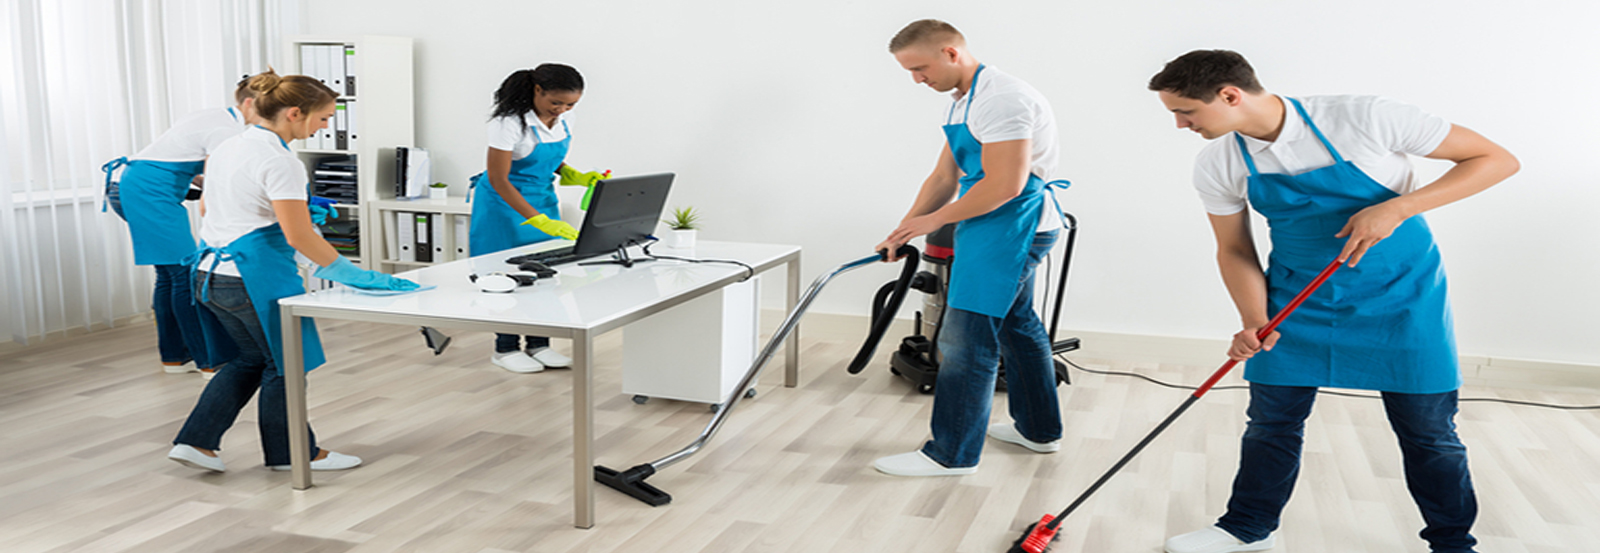 Commercial Janitorial Cleaning Services Lancaster County NE